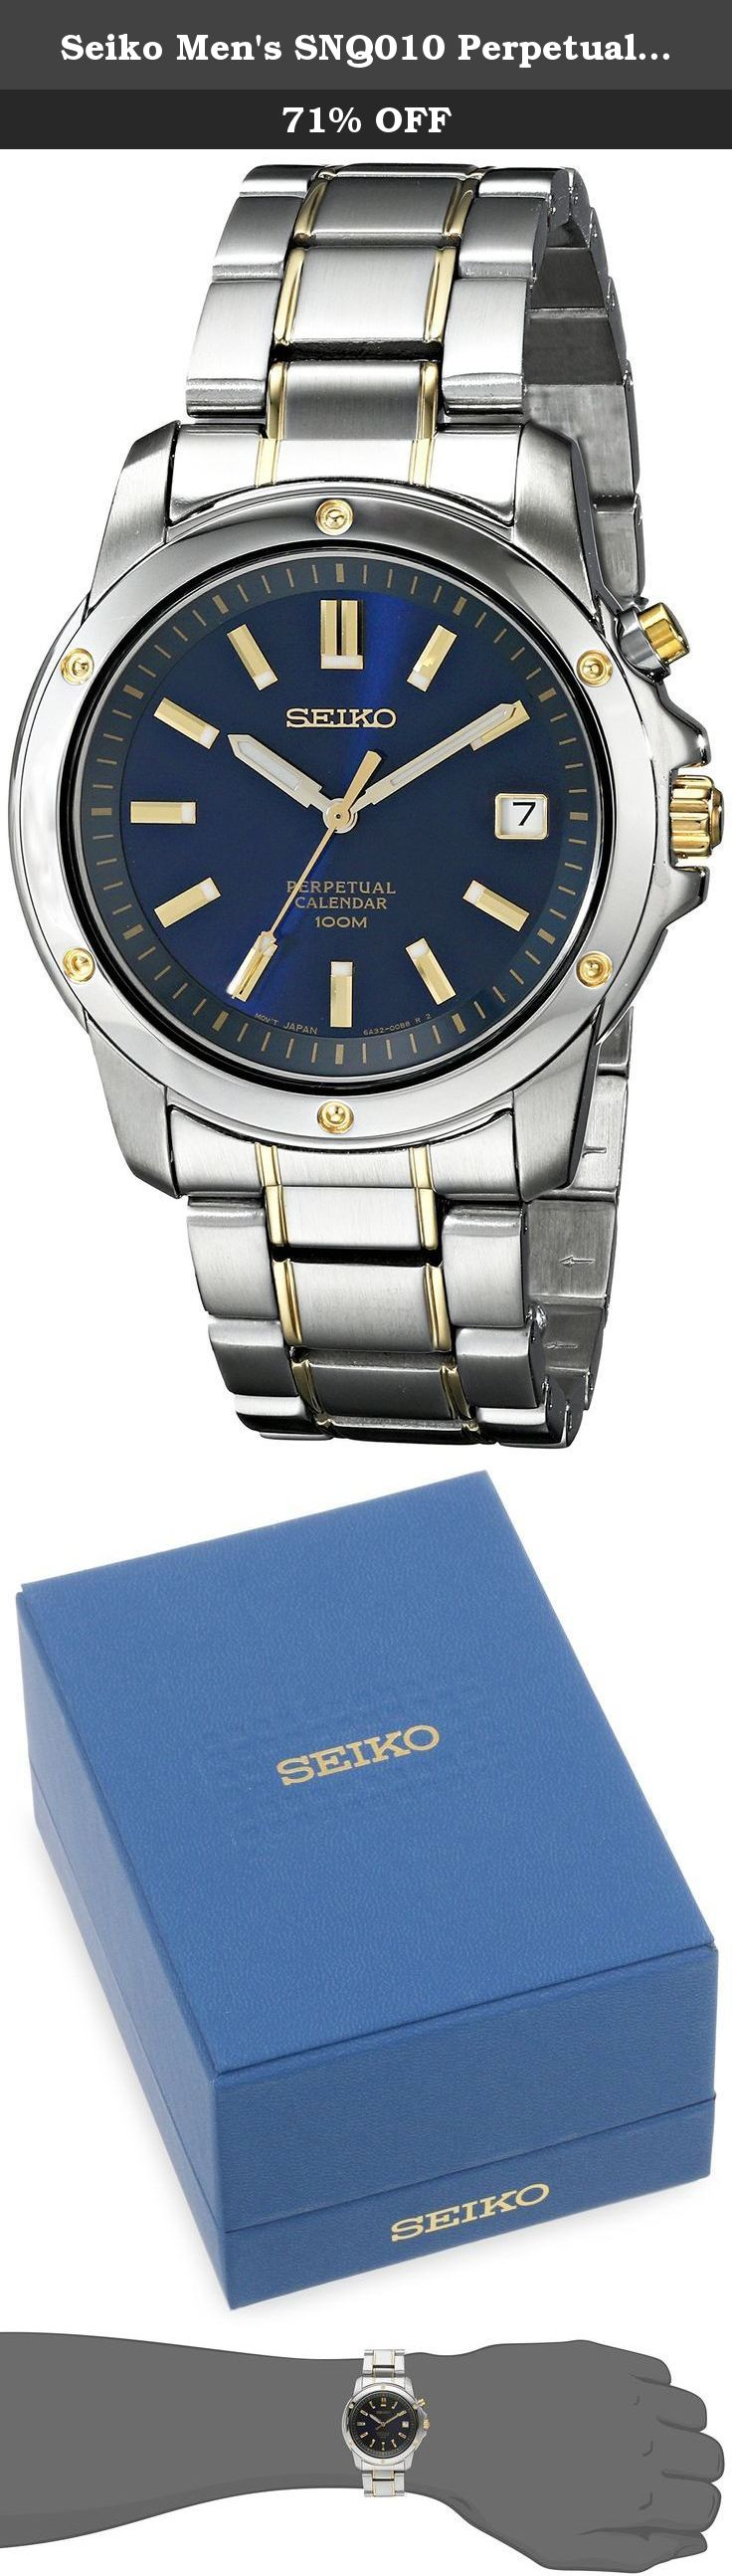 Seiko Men's SNQ010 Perpetual Calendar Watch. Two tone case and bracelet;Blue dial with goldtone hands and hour markers;Luminous hands and hour markers;Sweep second hand;Water resistant to 100 meters;Date display at 3:00;Perpetual calendar;Hardlex crystal;Japan quartz movement;Deployment clasp.